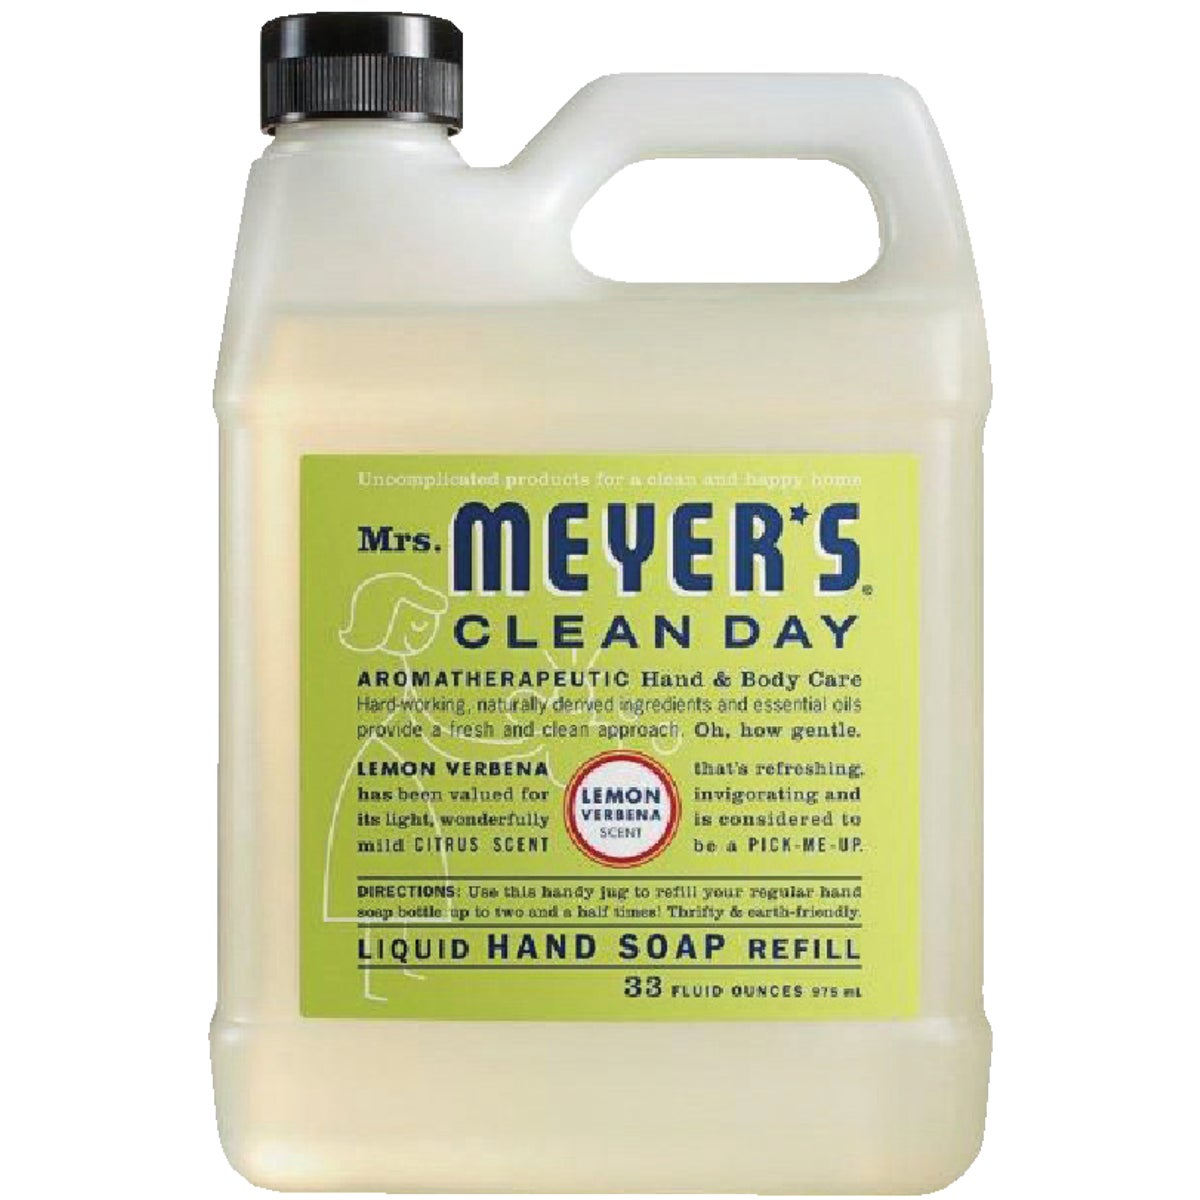 33OZ LEMON LIQ HAND SOAP - 12163 by Mrs Meyers Clean Day